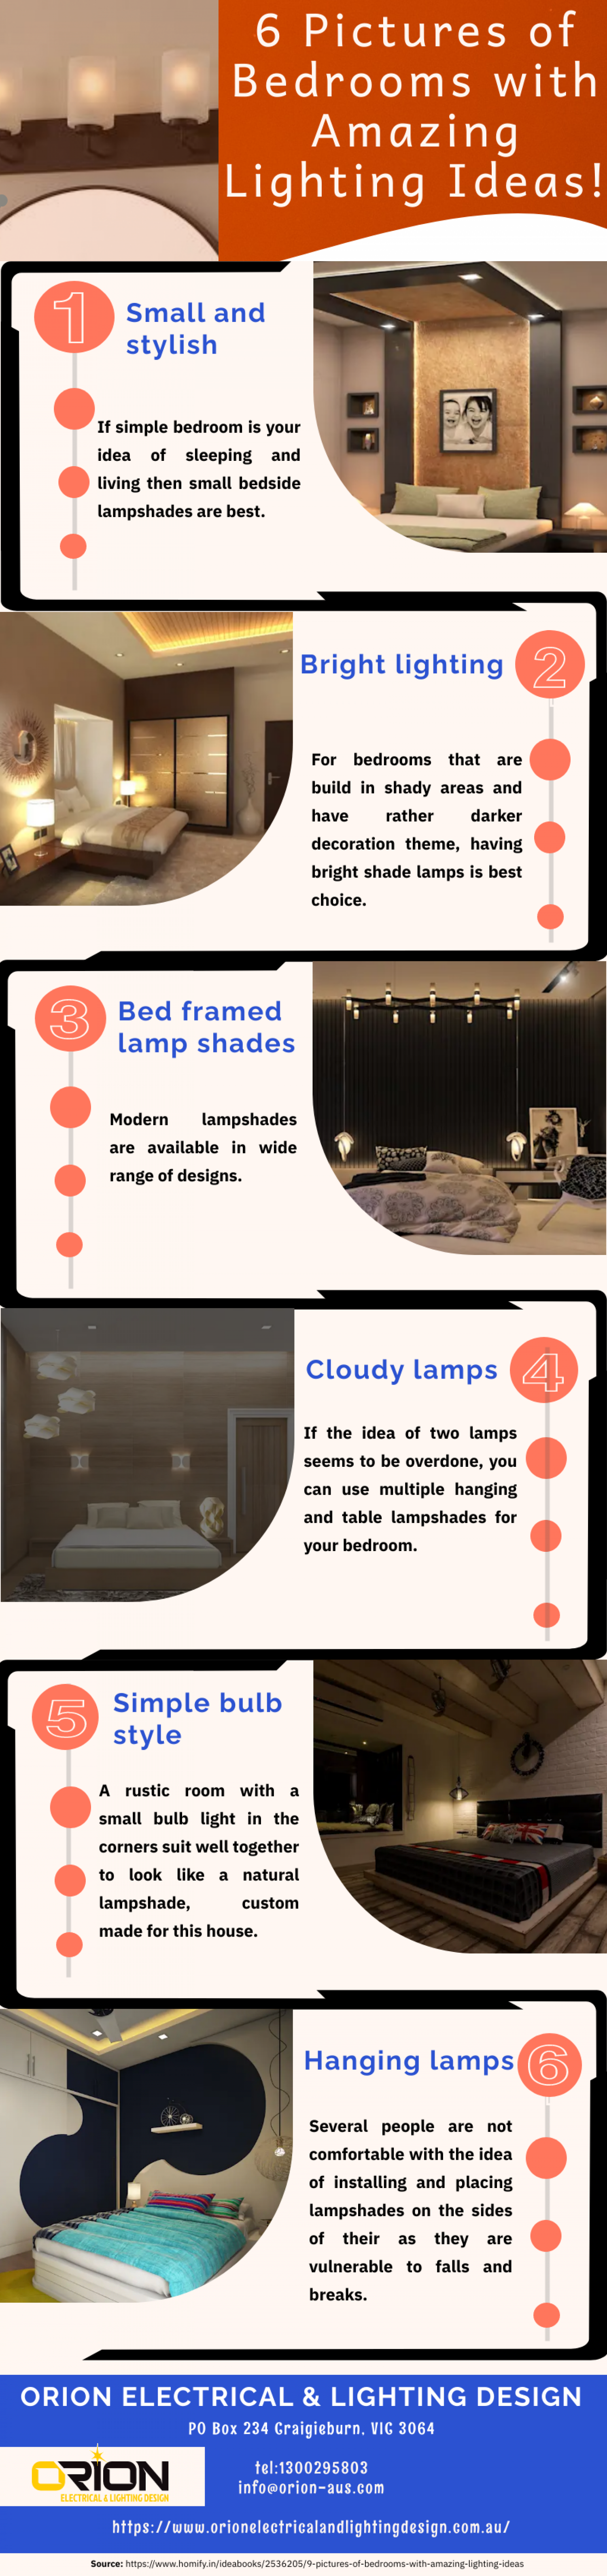 Six Pictures of Bedrooms with Amazing Lighting Ideas! Infographic